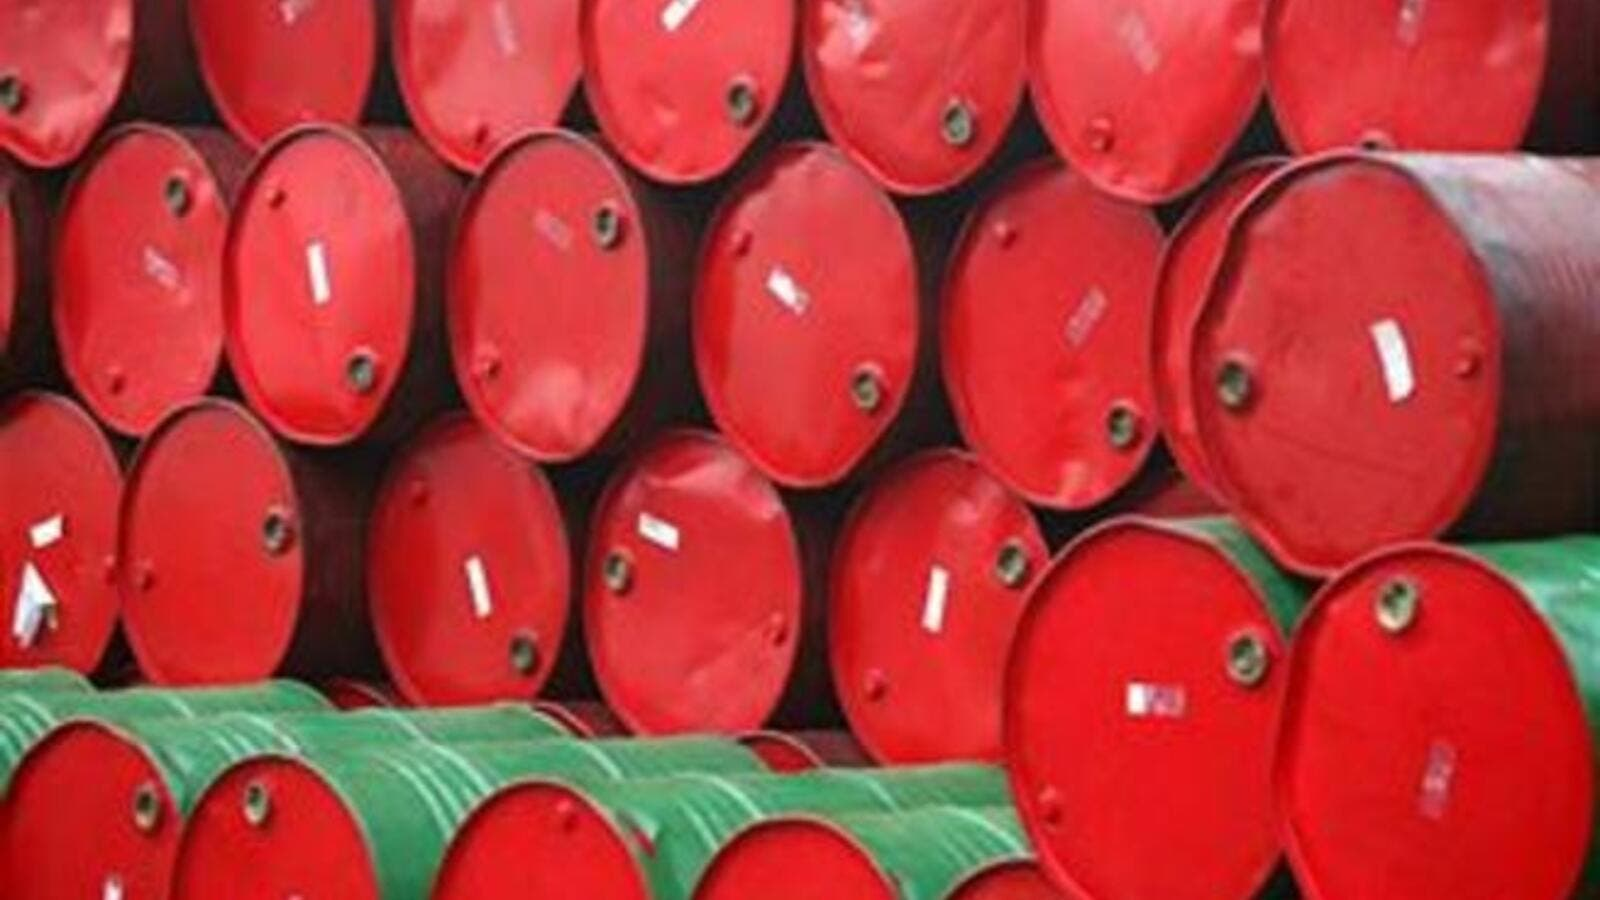 The International Energy Agency (IEA) currently has a plan to release up to 14 million barrels per day (bpd) of oil stored in the United States, Europe, Japan and other importers